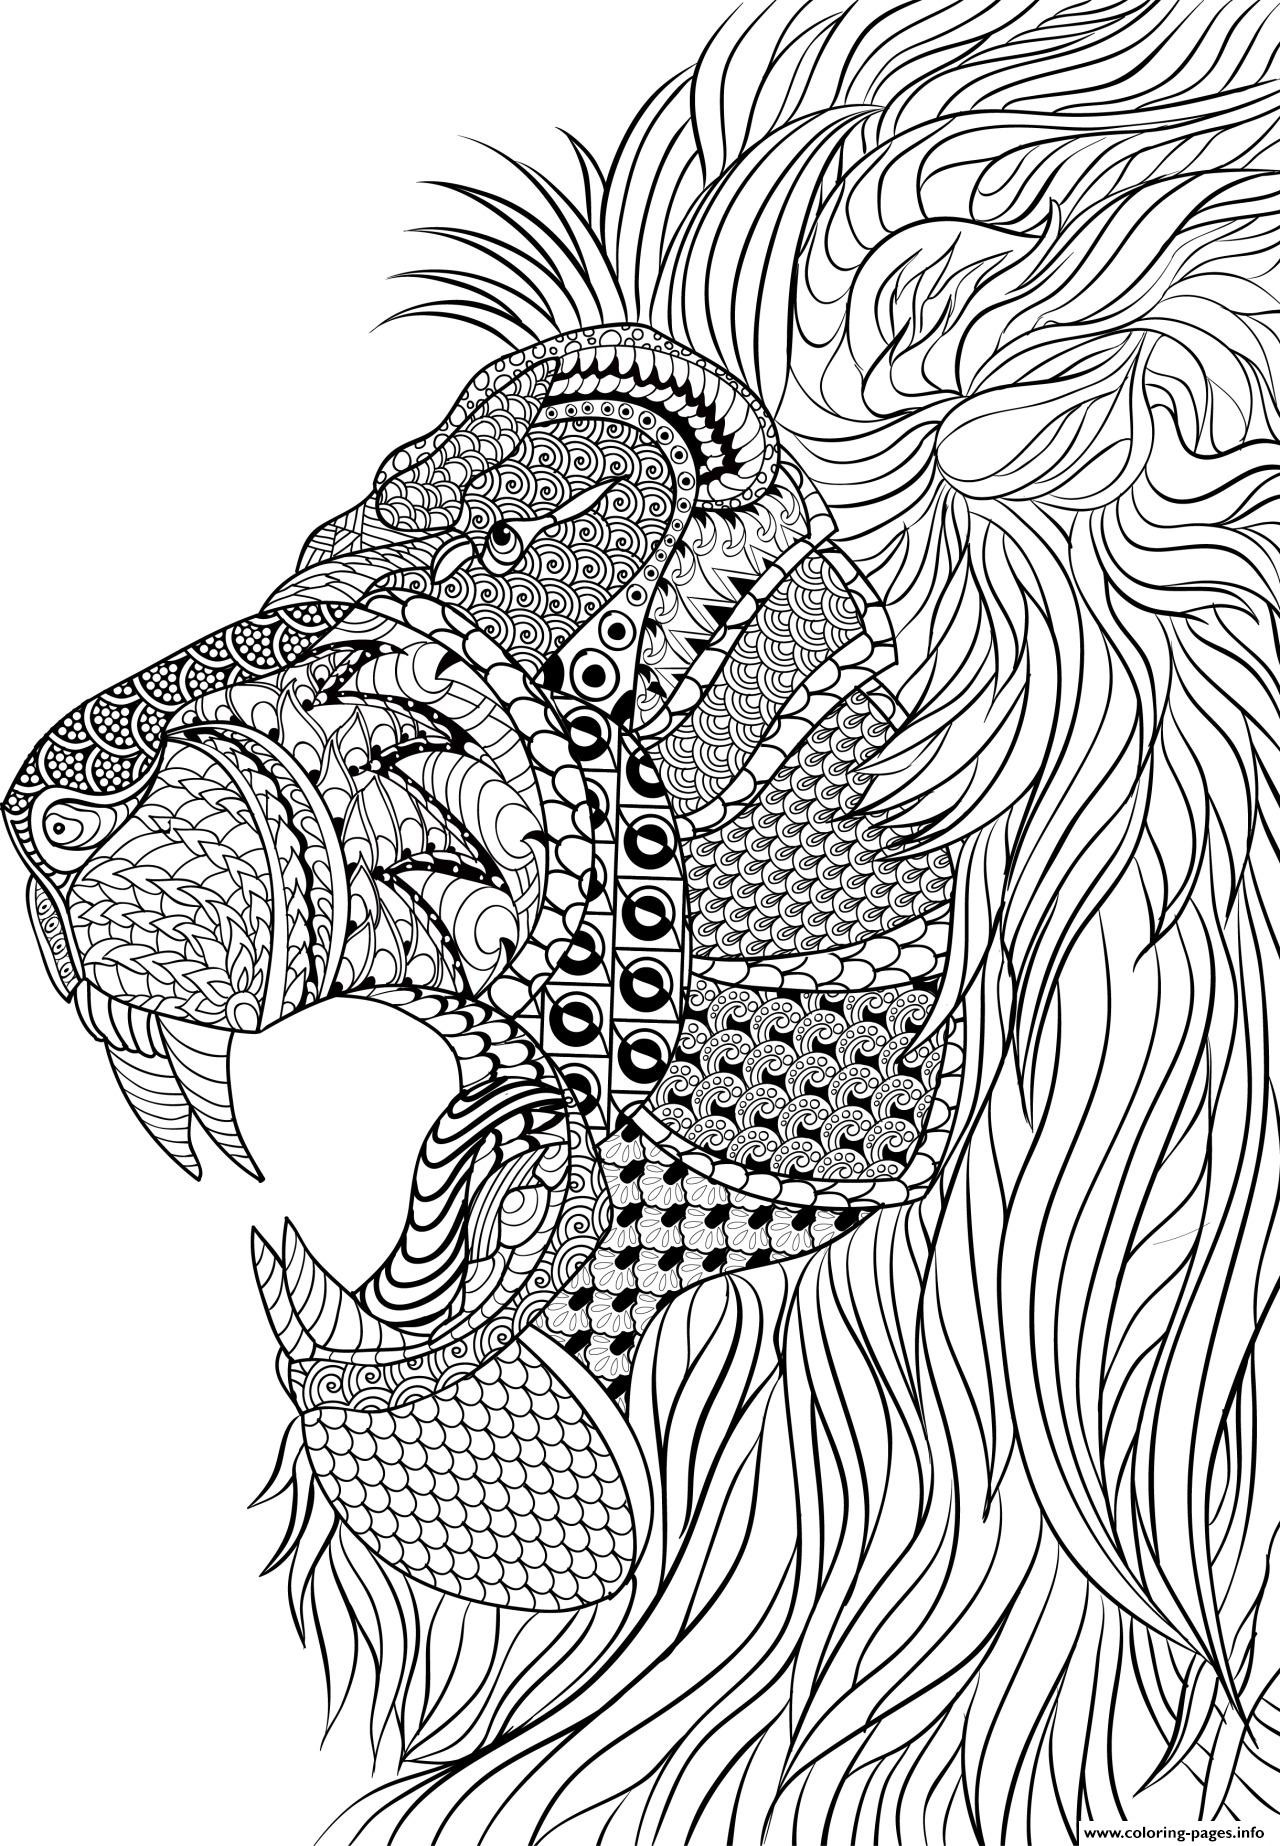 Adult Stress Coloring Books  Lion Adult Anti Stress Coloring Pages Printable